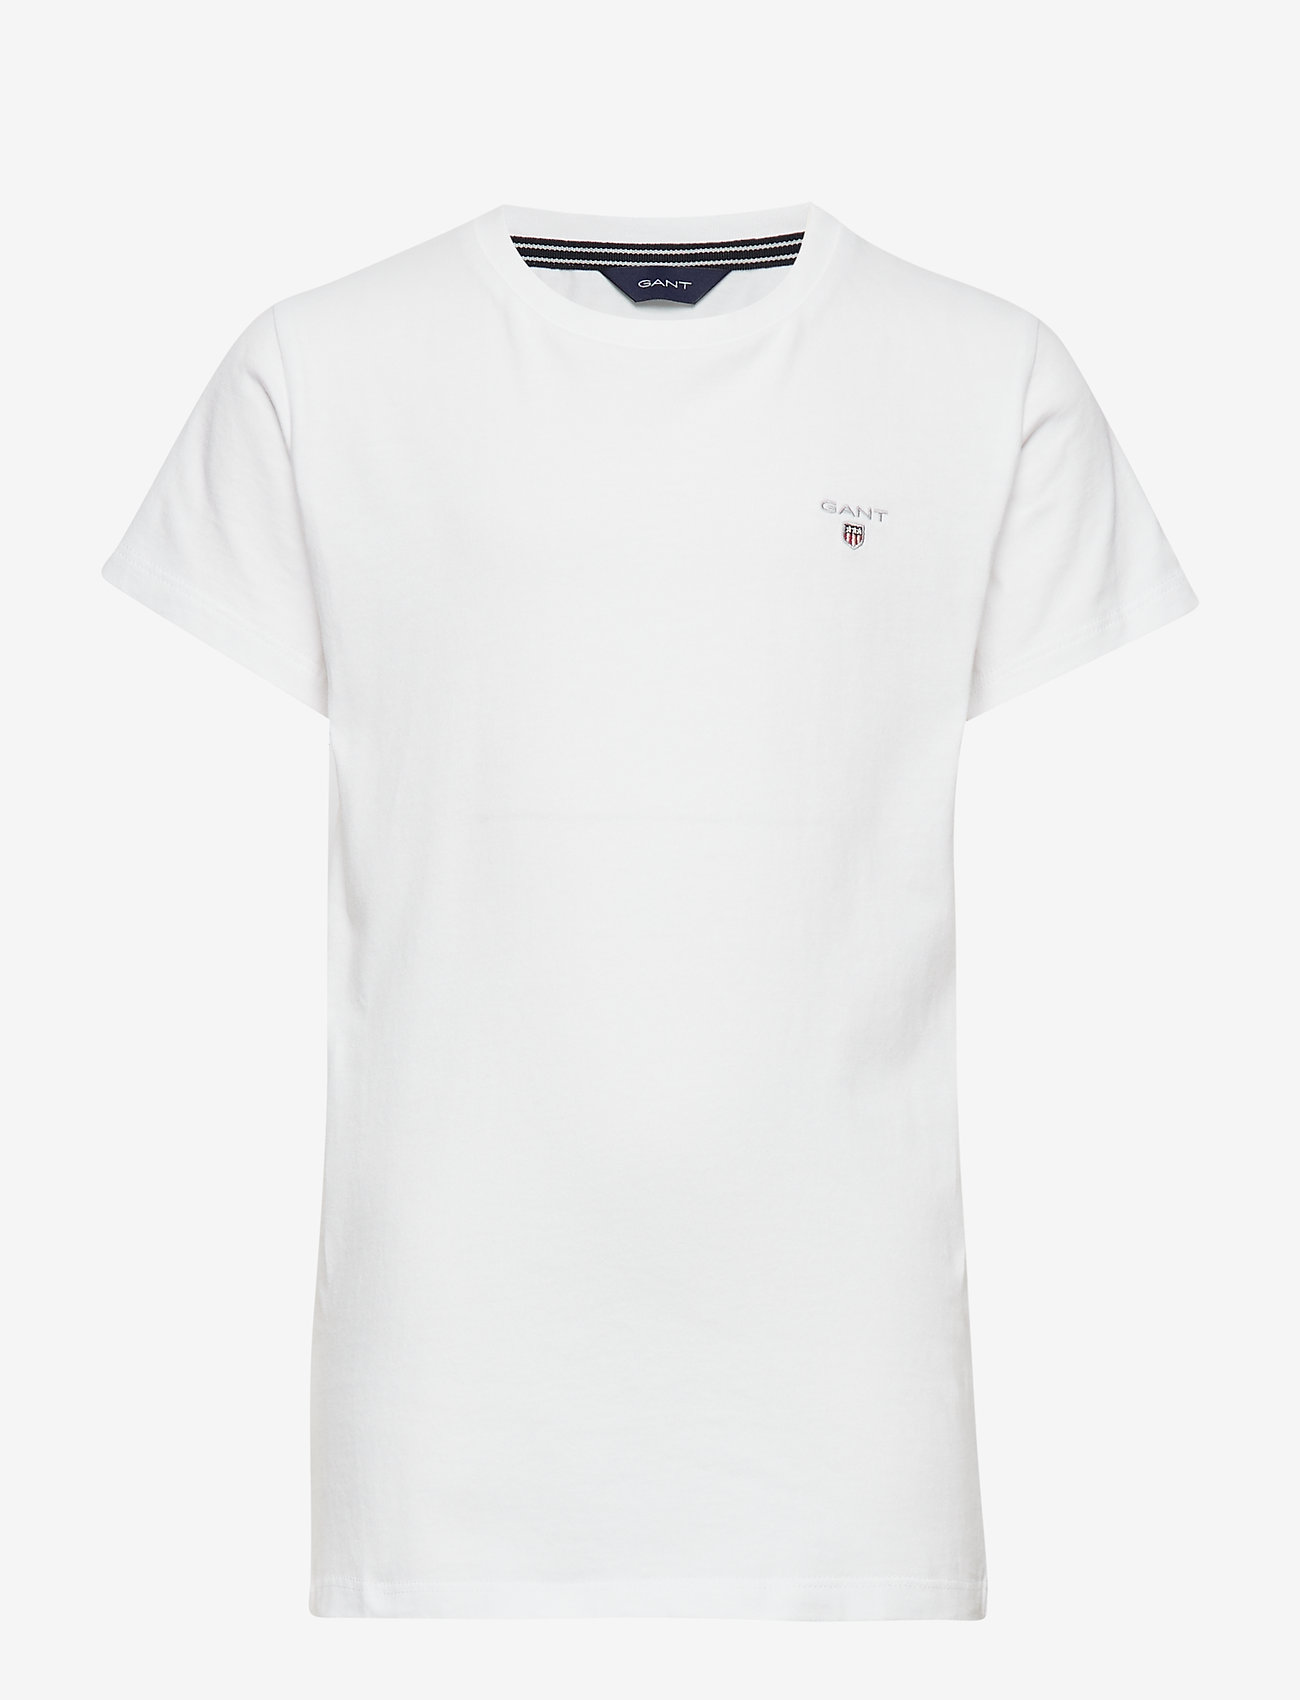 GANT - THE ORIGINAL SS T-SHIRT - kurzärmelige - white - 0